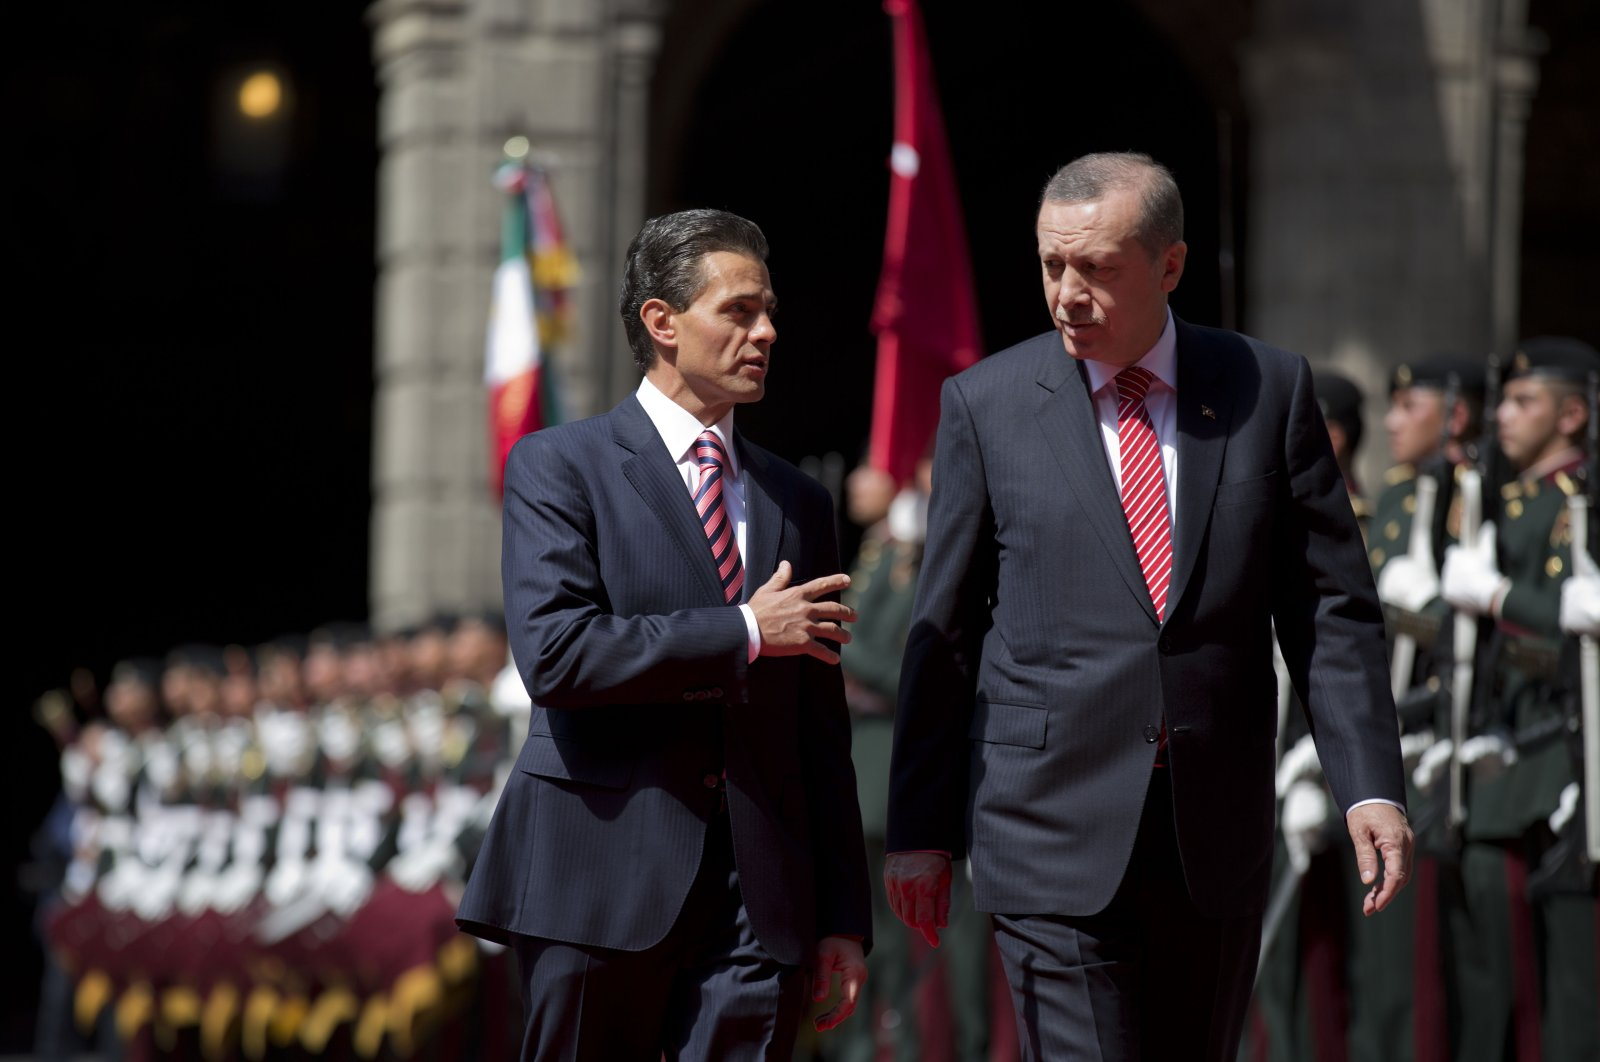 Mexican President Enrique Pena Nieto (L) speaks with Turkish President Recep Tayyip Erdoğan as they walk past an honor guard during a welcome ceremony at the National Palace in Mexico City, Mexico, Feb. 12, 2015. (AP File Photo)